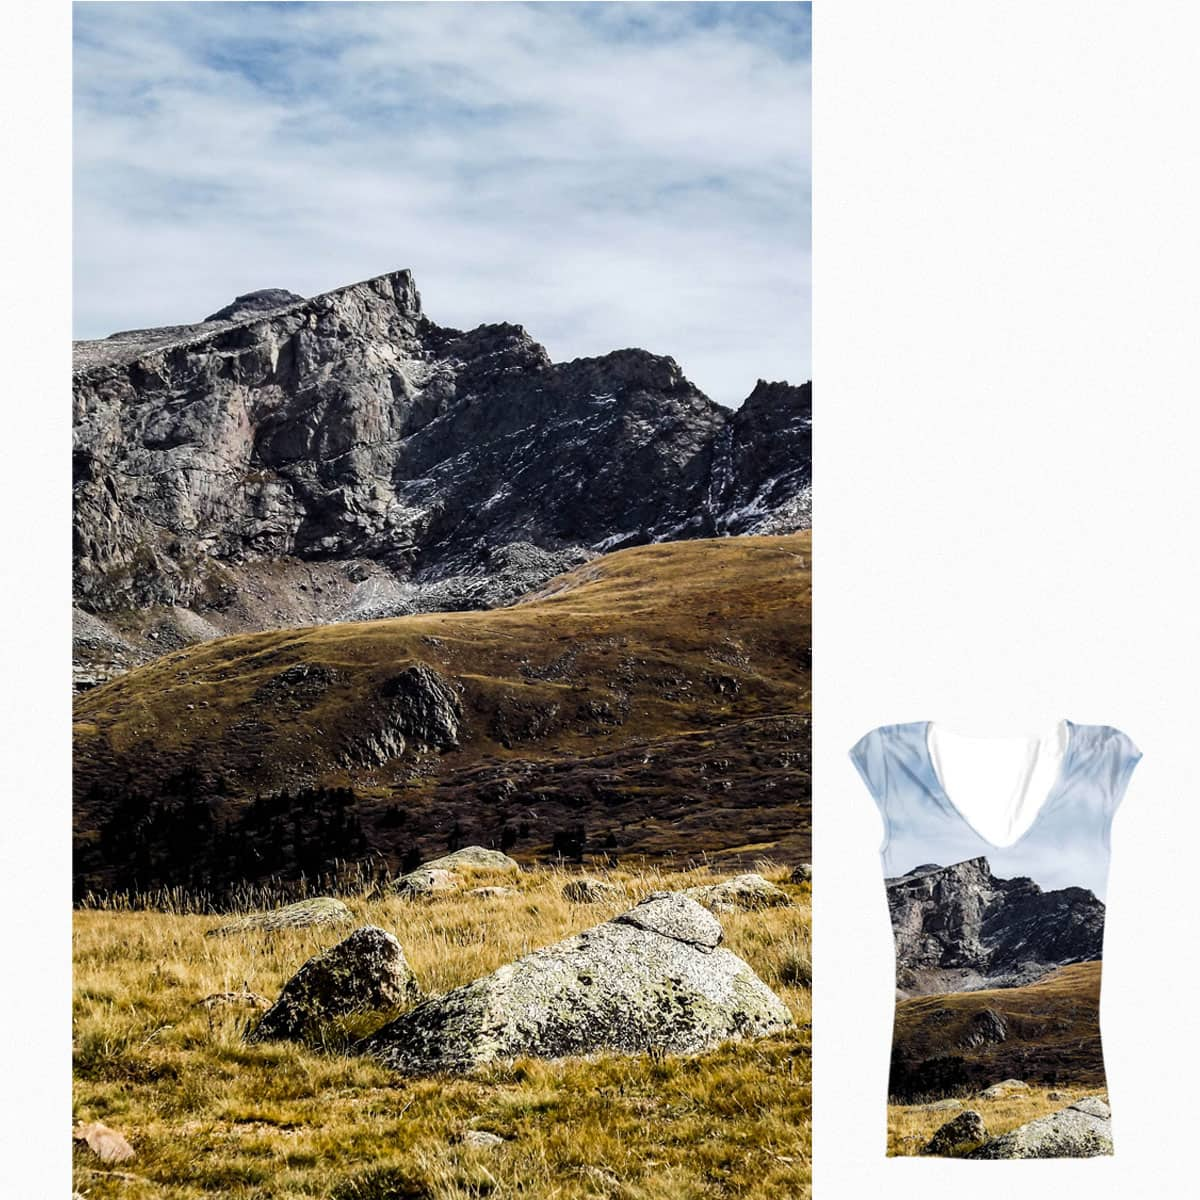 Over the Misty Mountains by kristenmiller5 on Threadless